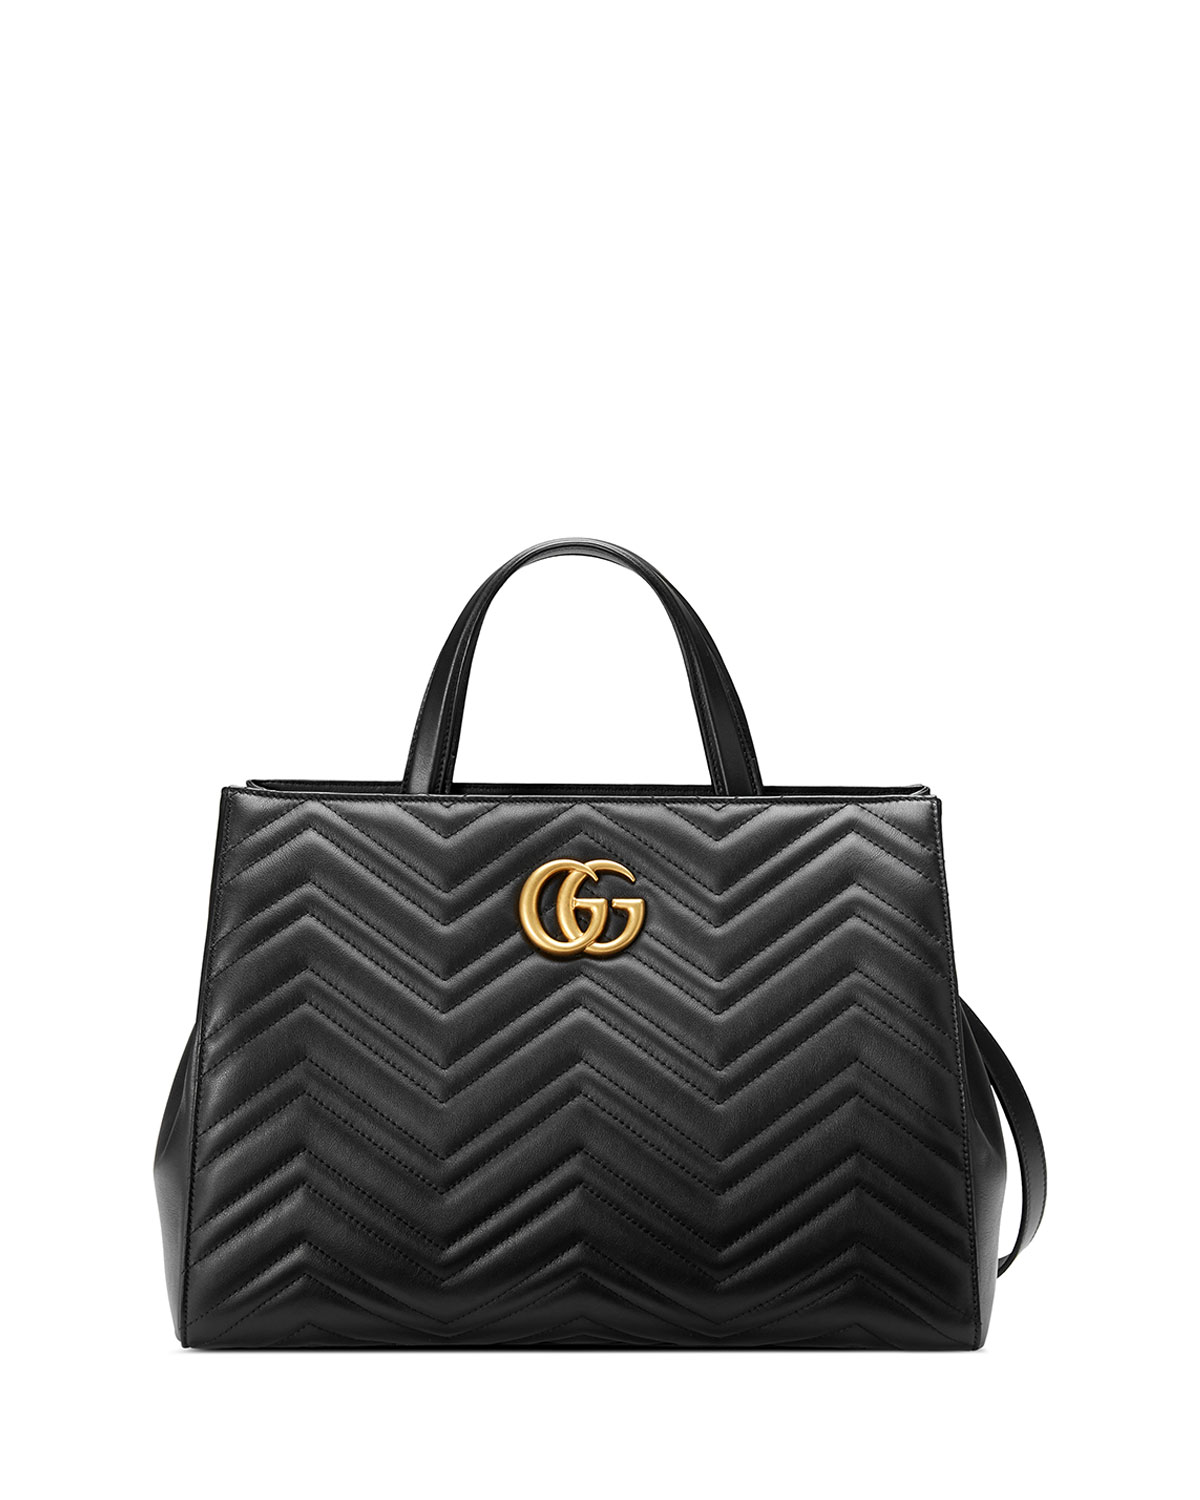 1b458ebcee1 Gucci GG Marmont Medium Matelassé Top-Handle Bag